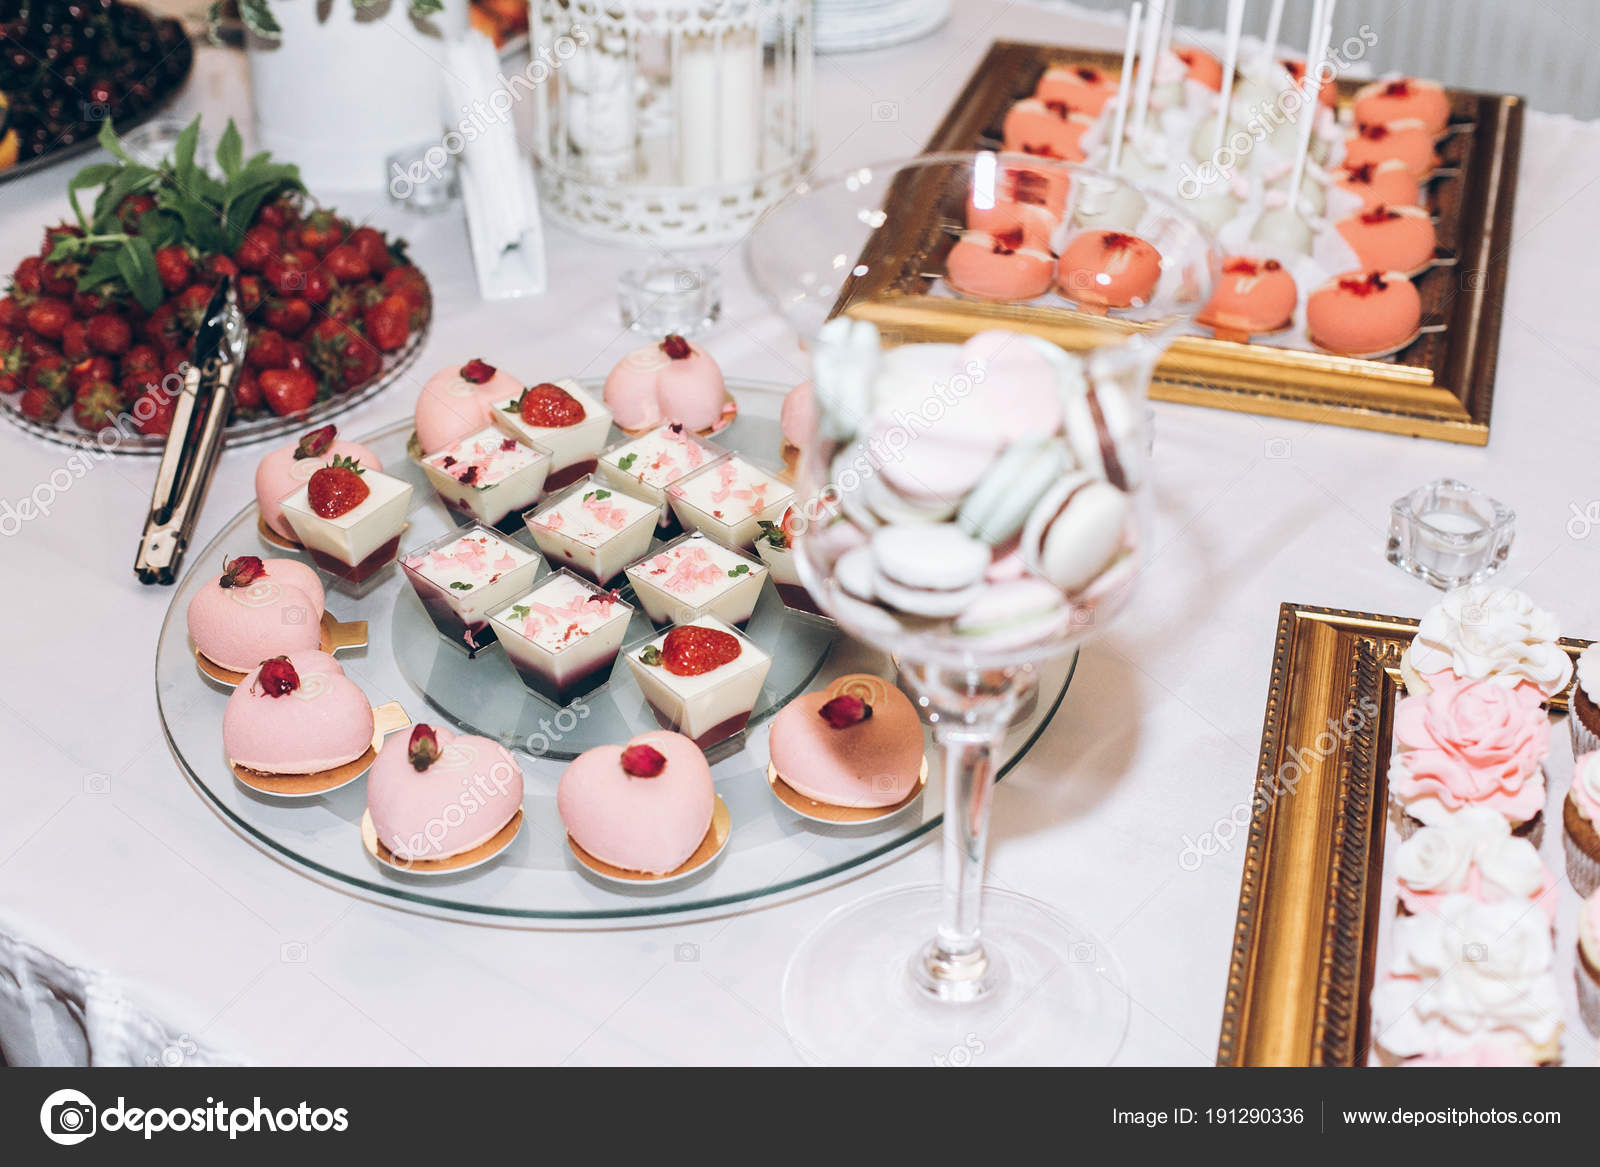 Delicious Sweets Cupcakes Roses Pops Candy Table Wedding Reception